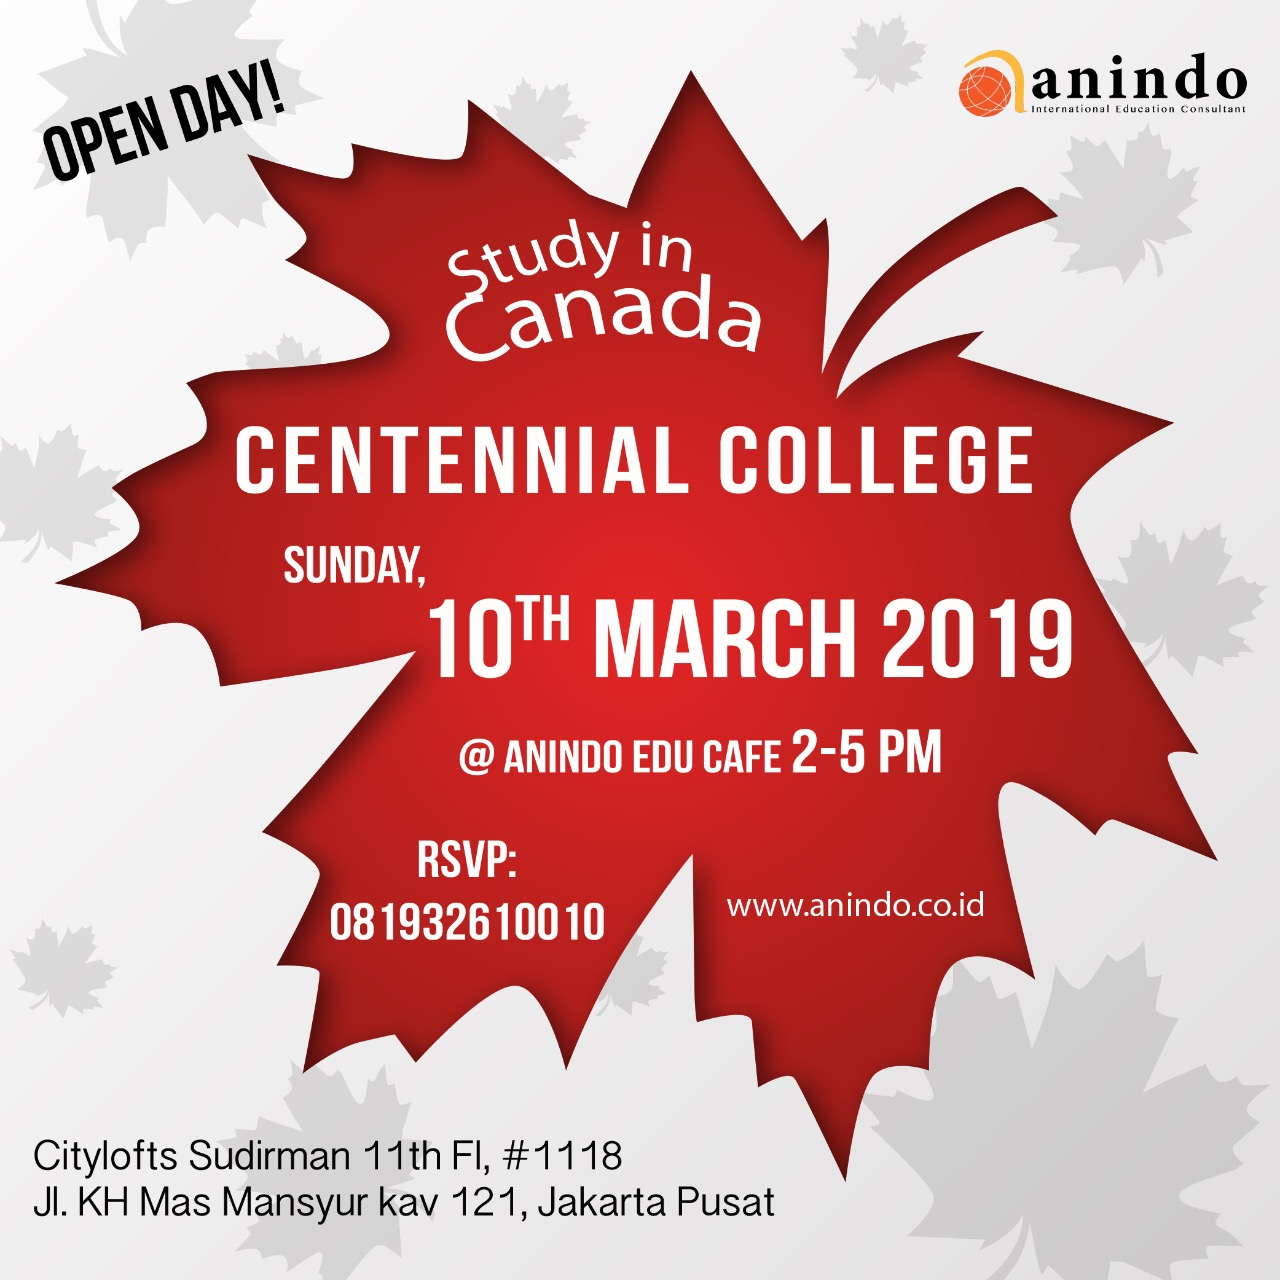 Info Session (Study, Work, and Live in Canada with Centennial College Canada)